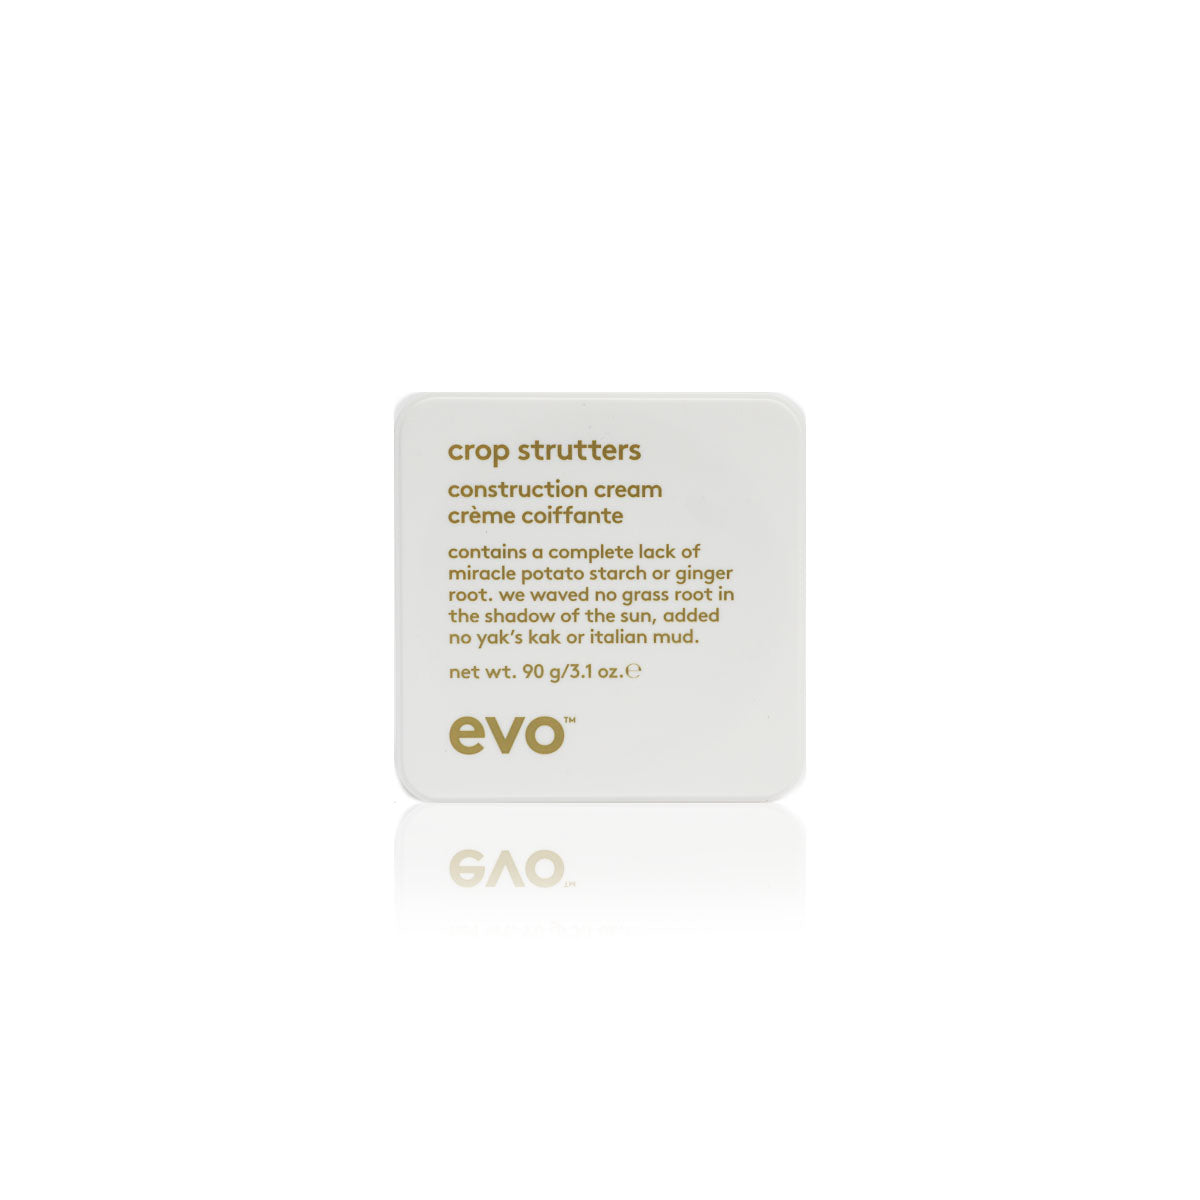 Evo crop strutters construction cream, Improves definition, flexible hold - Case of 3 bottles 90g / 3.1oz (New)